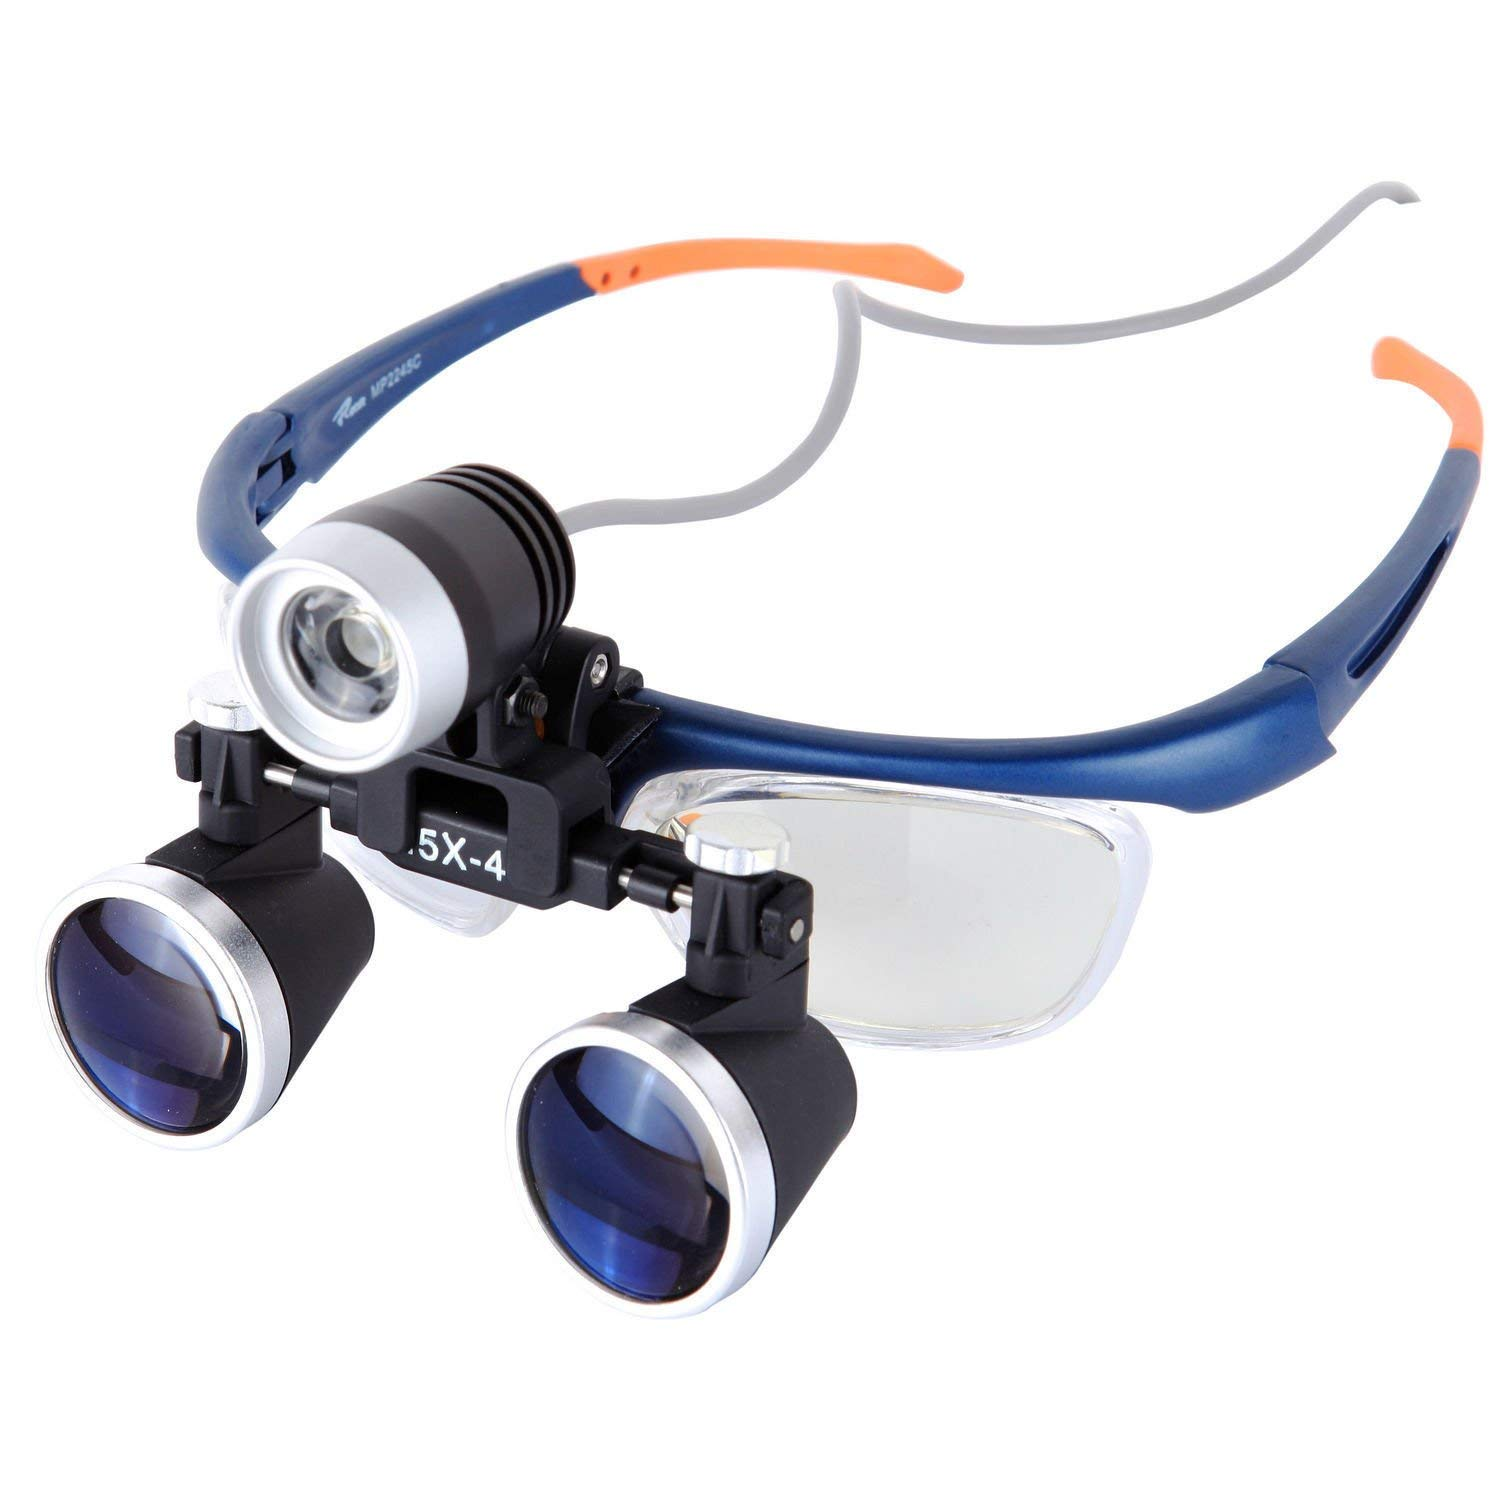 2086528ec4b8 Get Quotations · ELEOPTION Headset Magnifying Glasses With LED Headlight  Lamp Magnifier Loupe For Dental Surgical Binocular Loupes Glasses